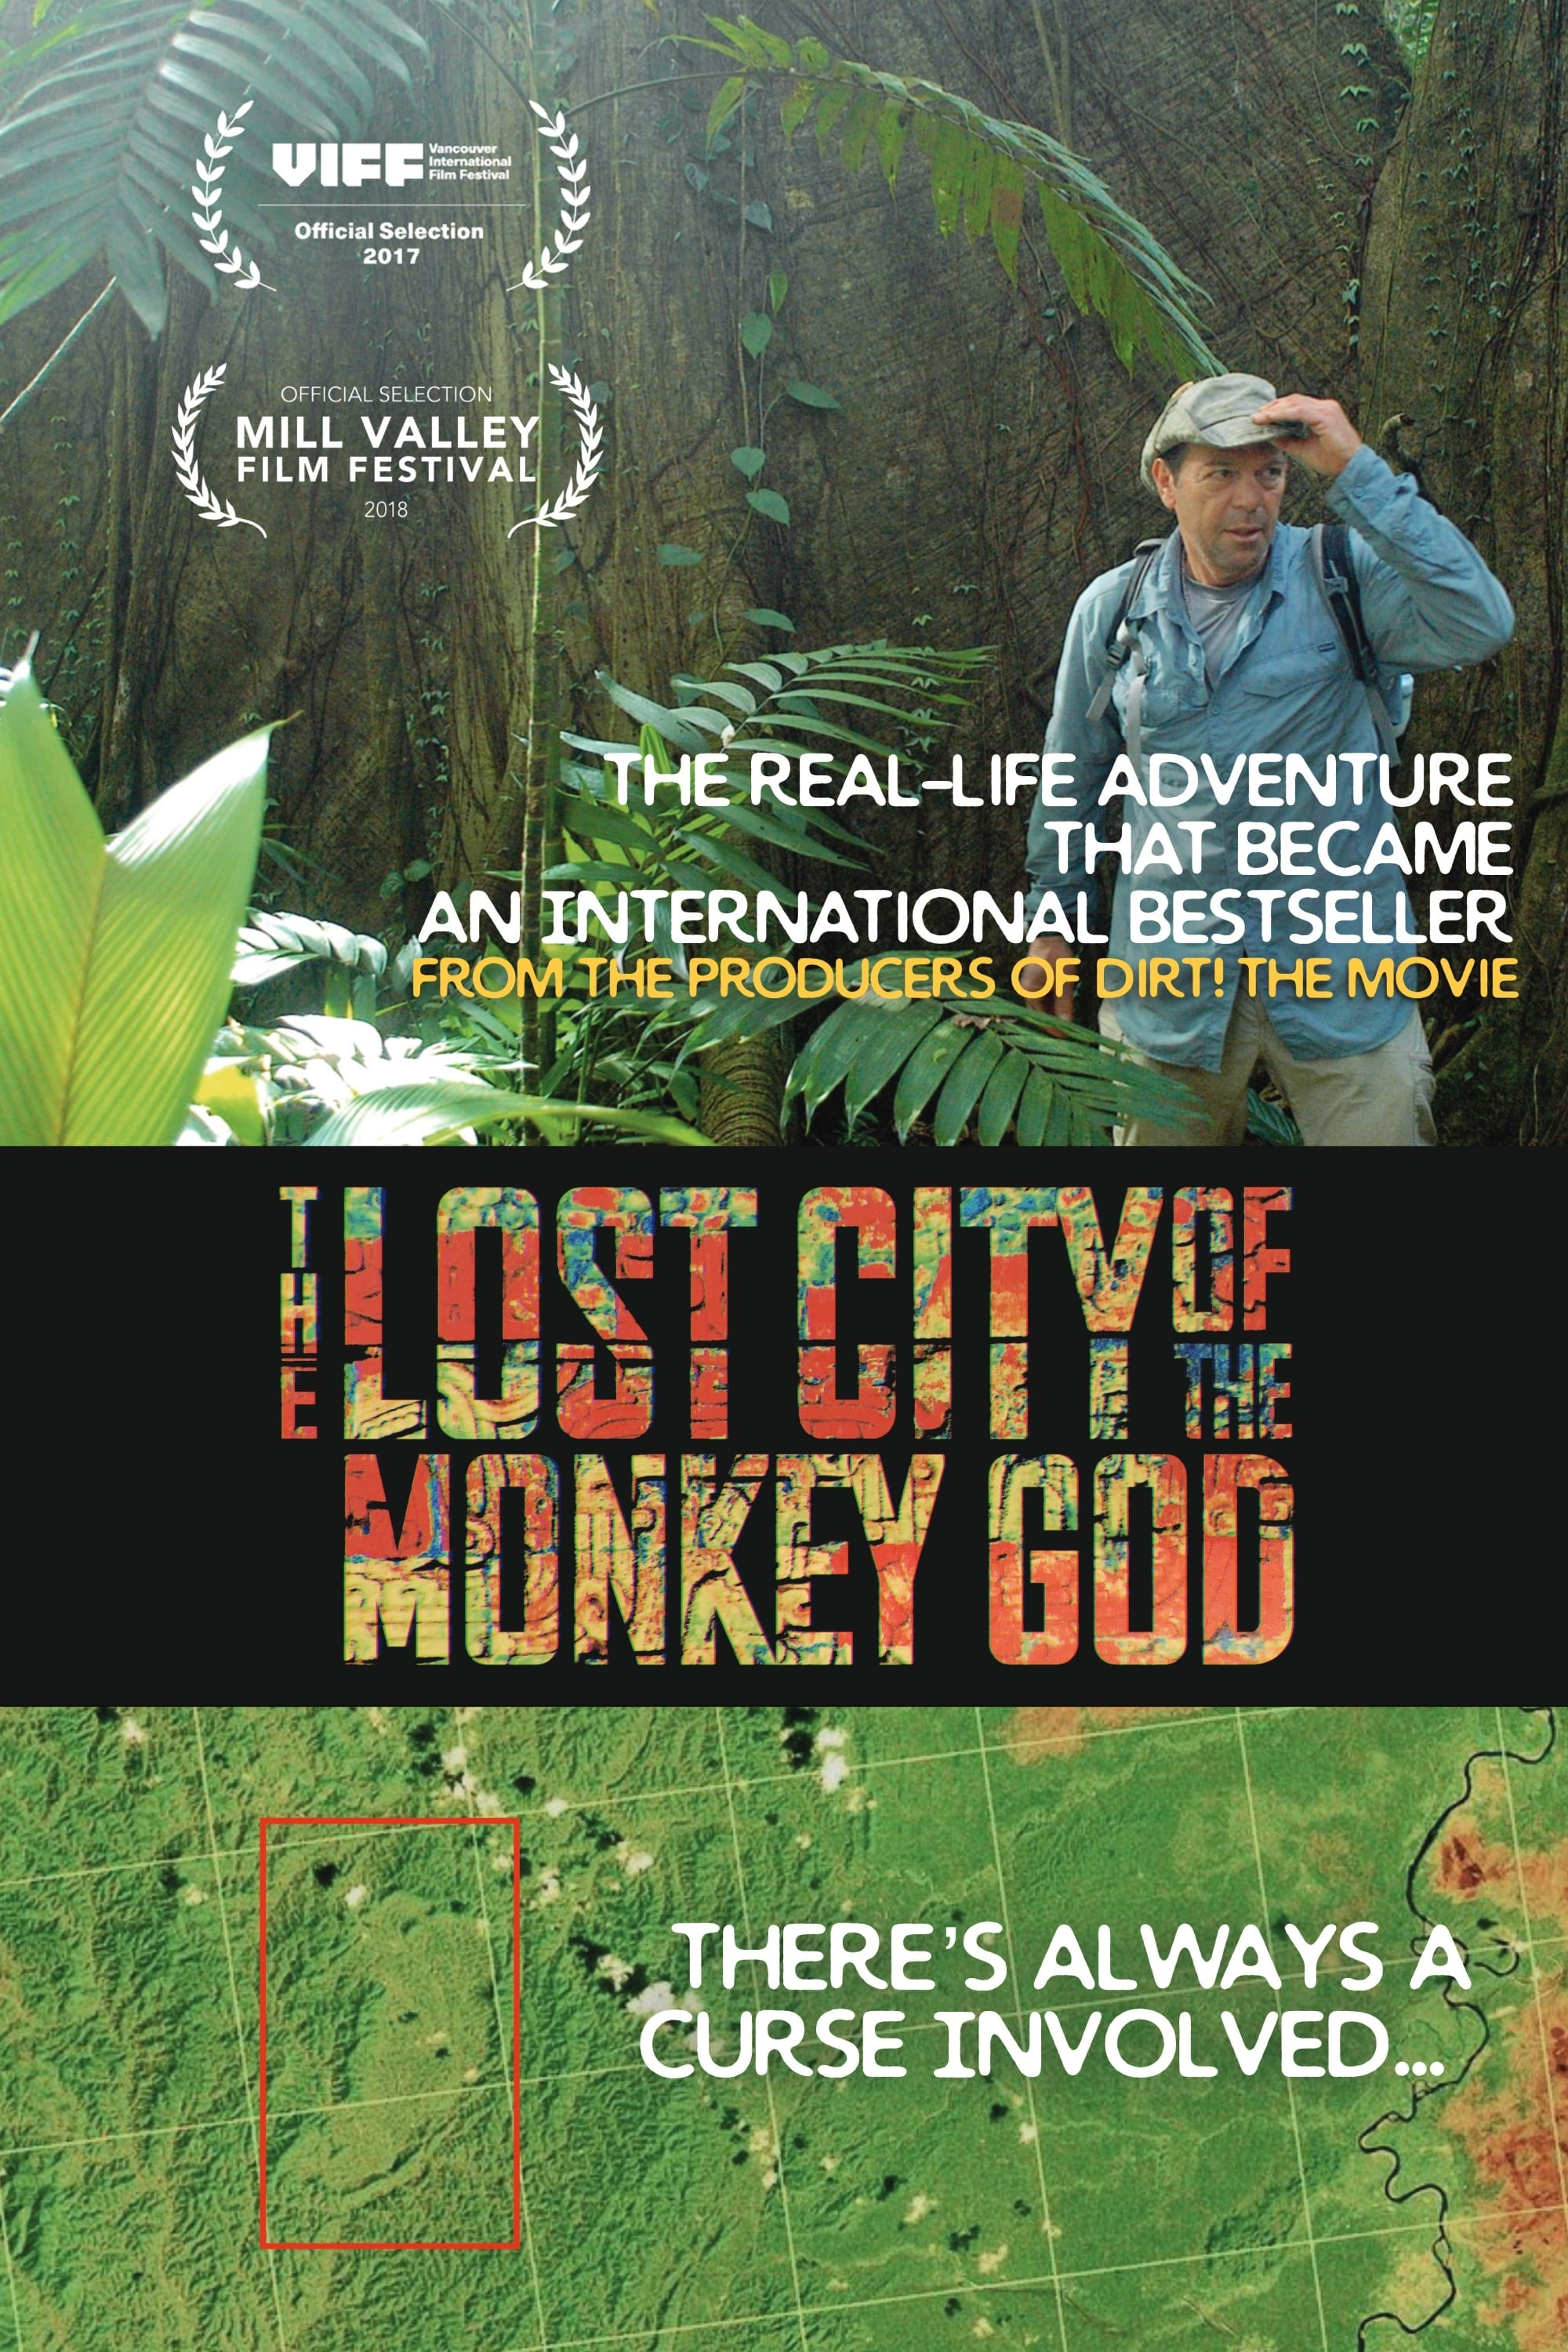 The Lost City of the Monkey God (2018)